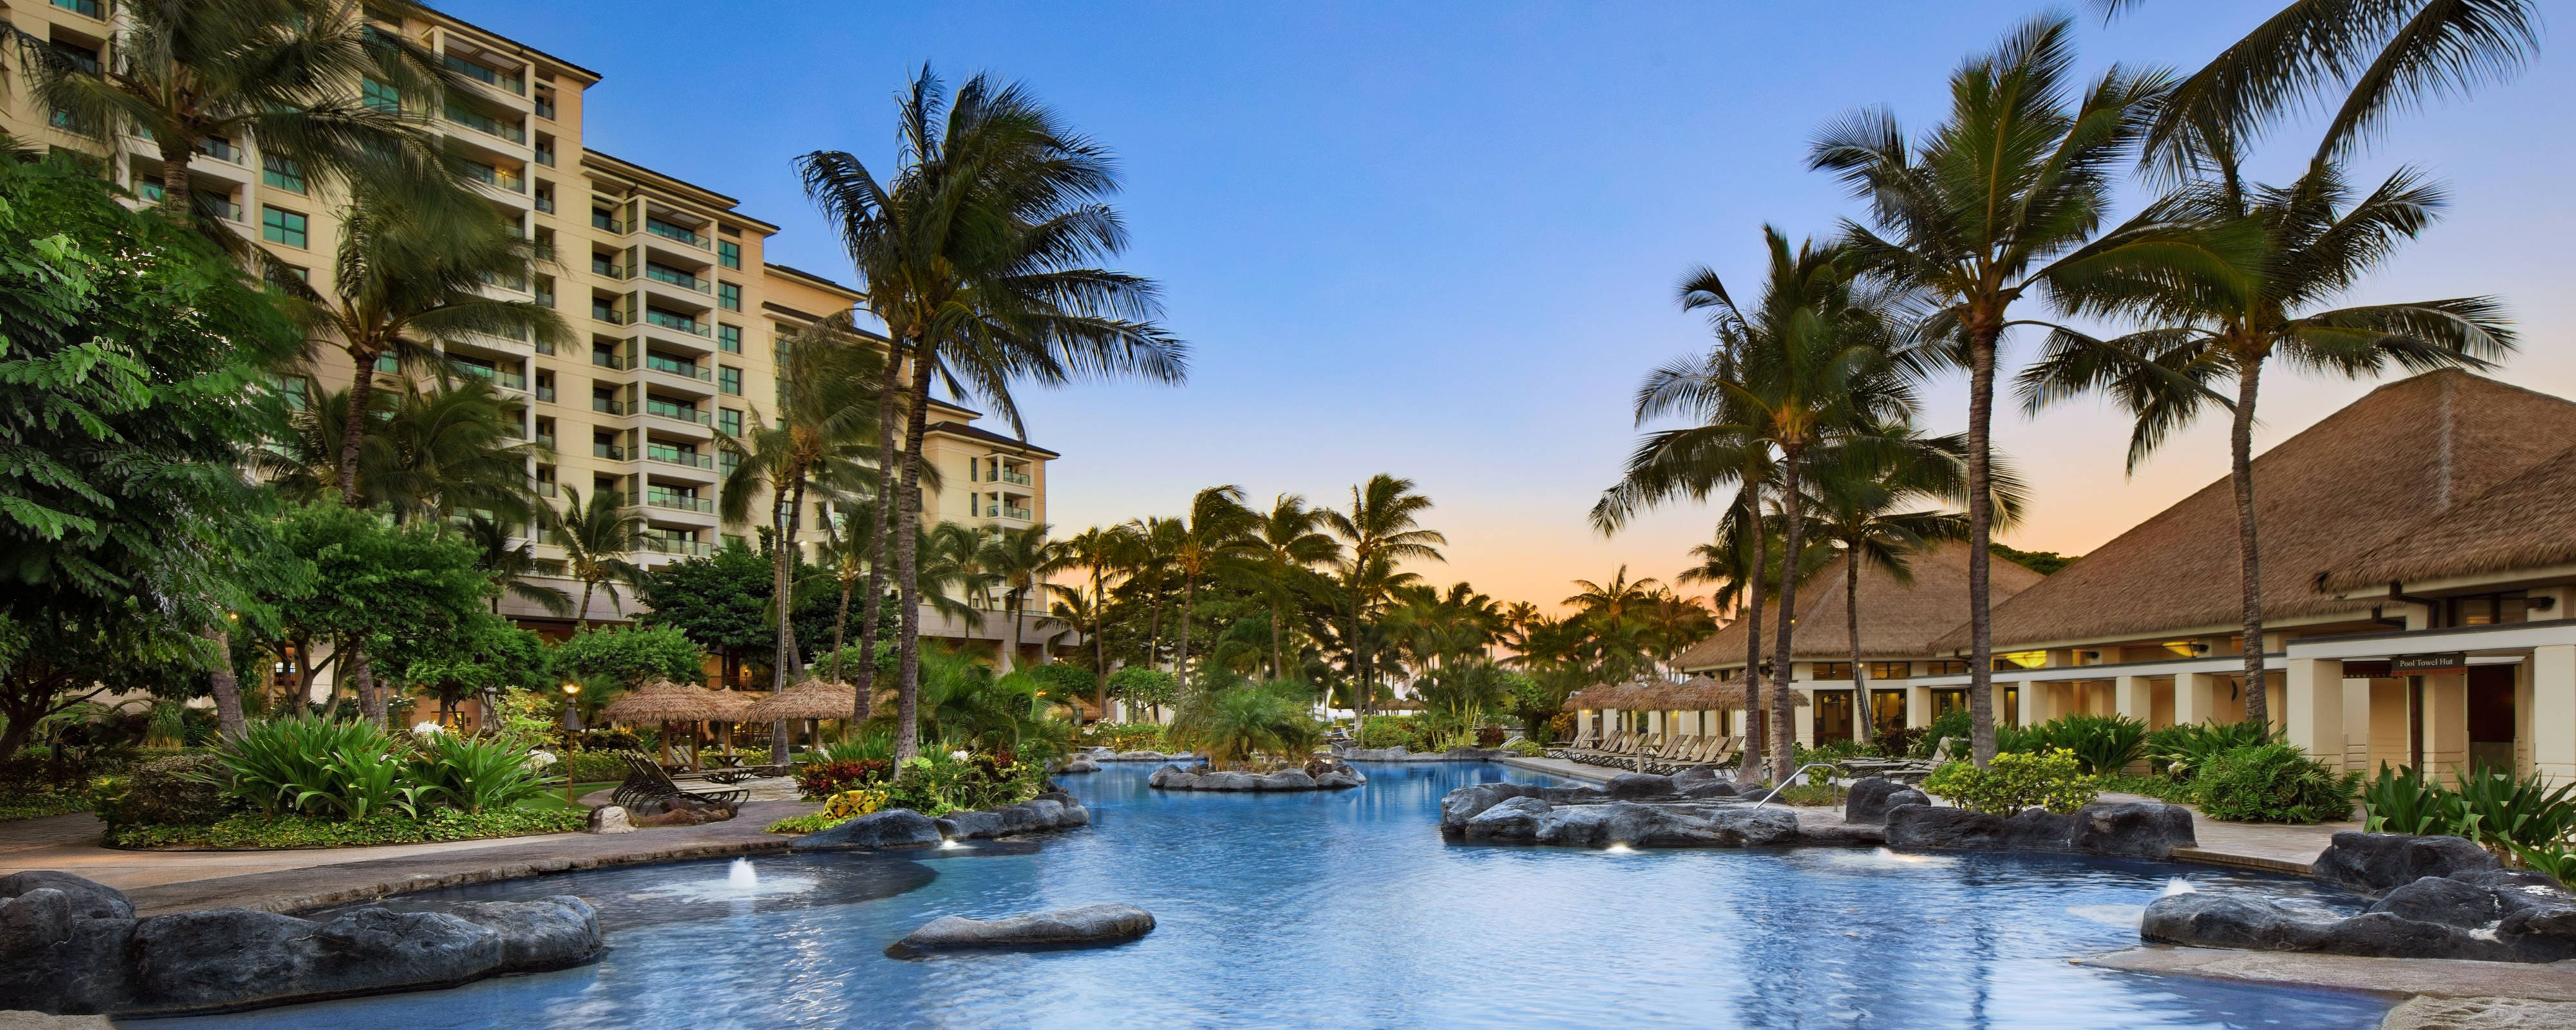 Hotel Gym  Recreation  Marriotts Ko Olina Beach Club